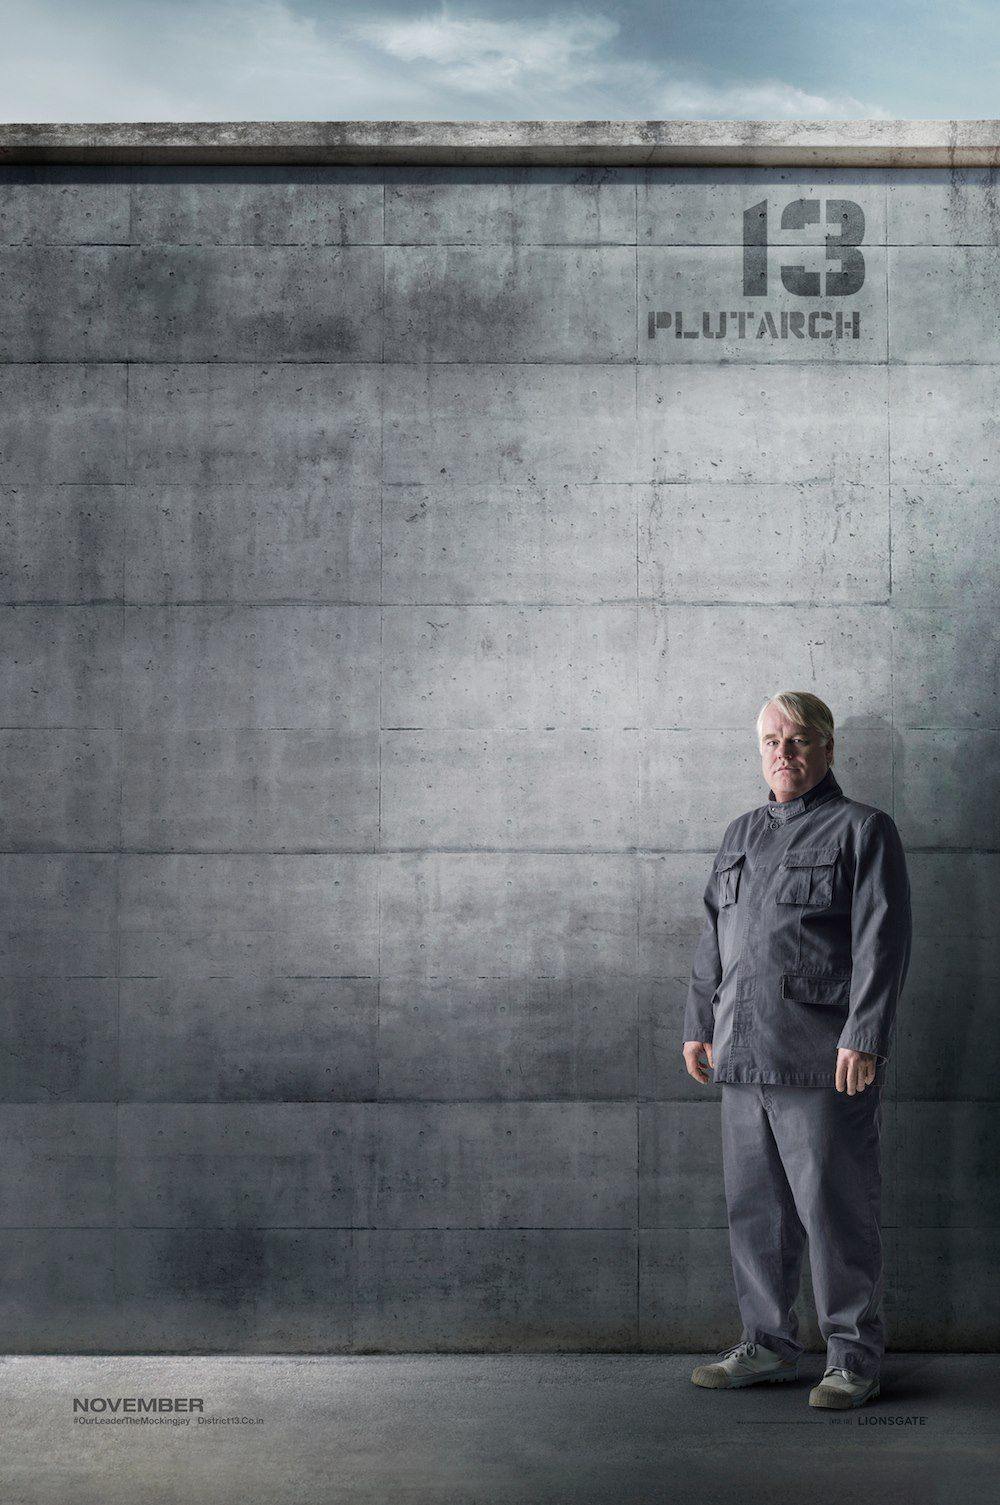 #TheHungerGames: #Mockingjay Part 1 (2014) District 13